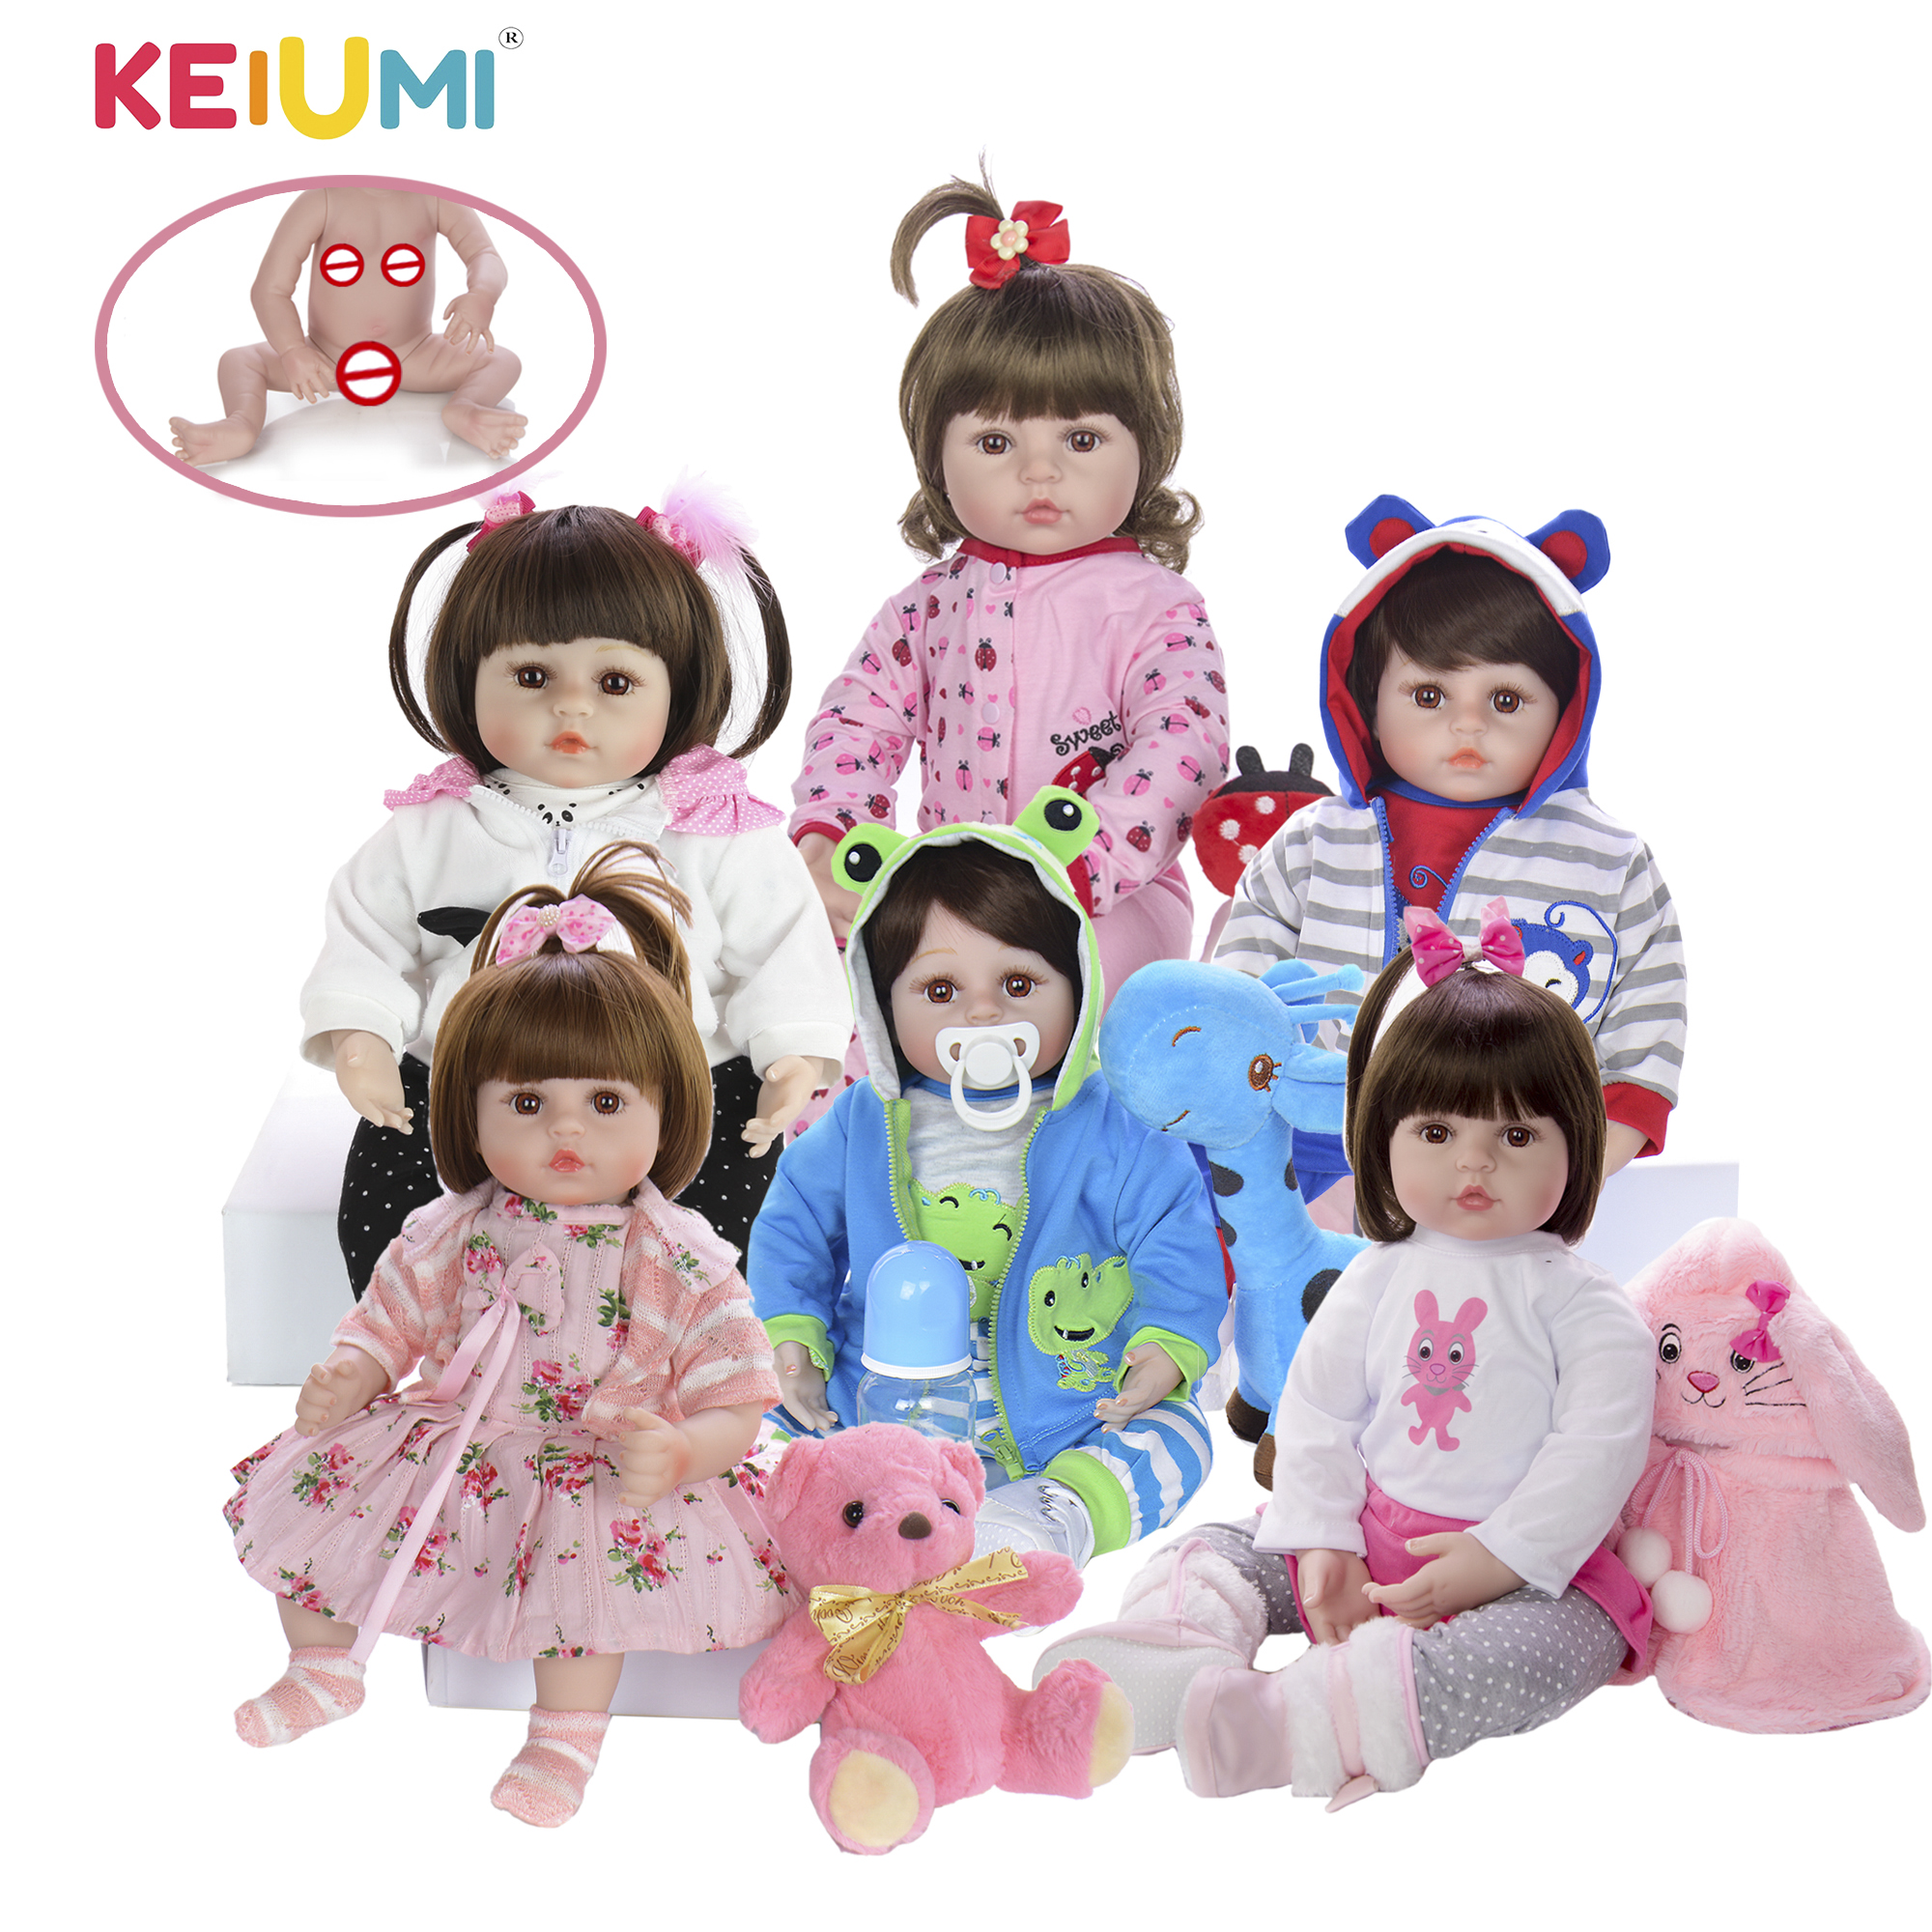 Wholesale KEIUMI Full Silicone Vinyl Reborn Baby Dolls Fashion Waterproof Doll Baby Toy For Kids Birthday Gifts Best Playmate(China)